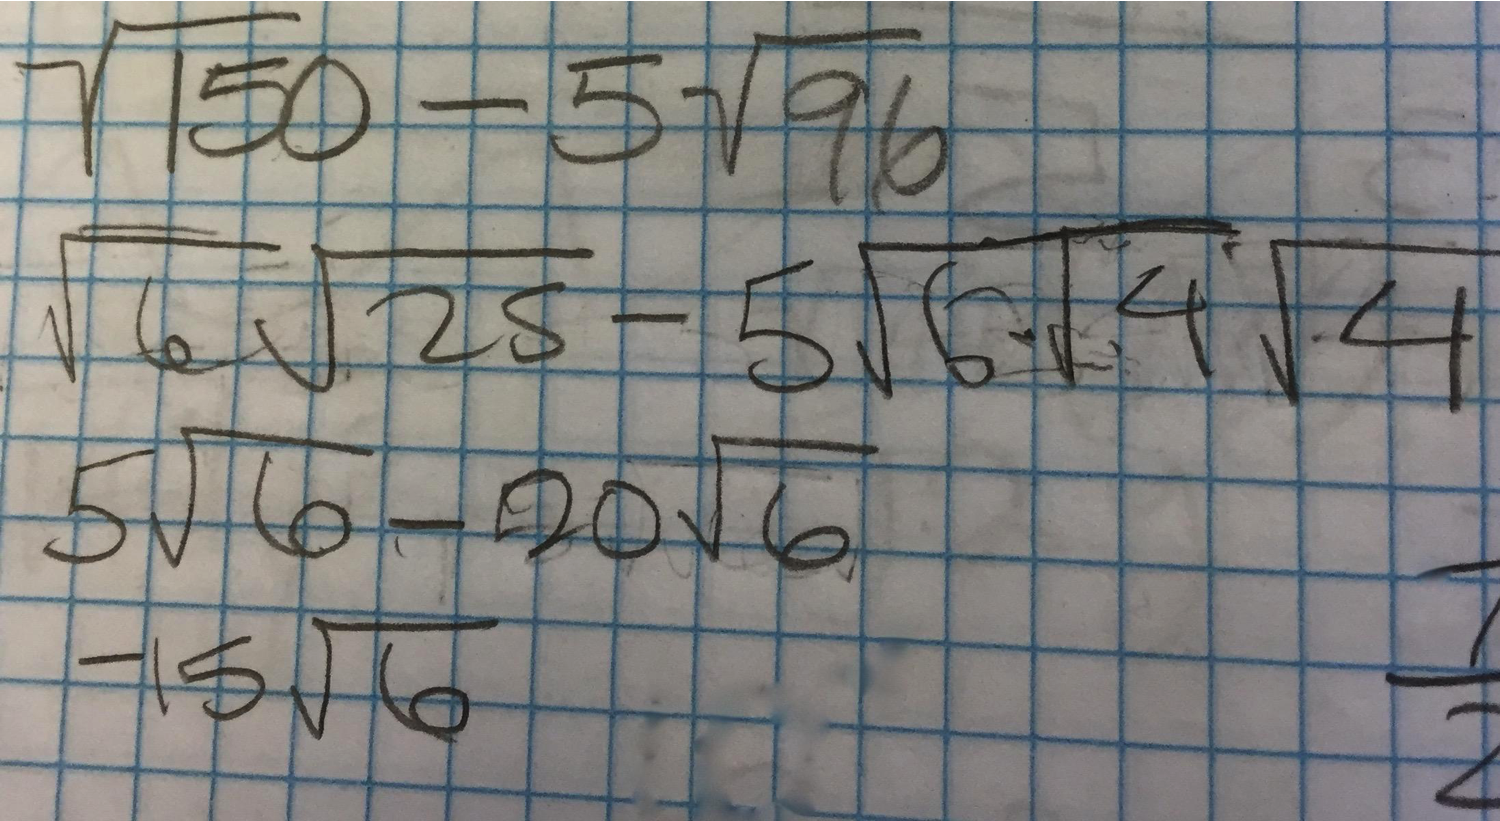 Subtraction with Radicals